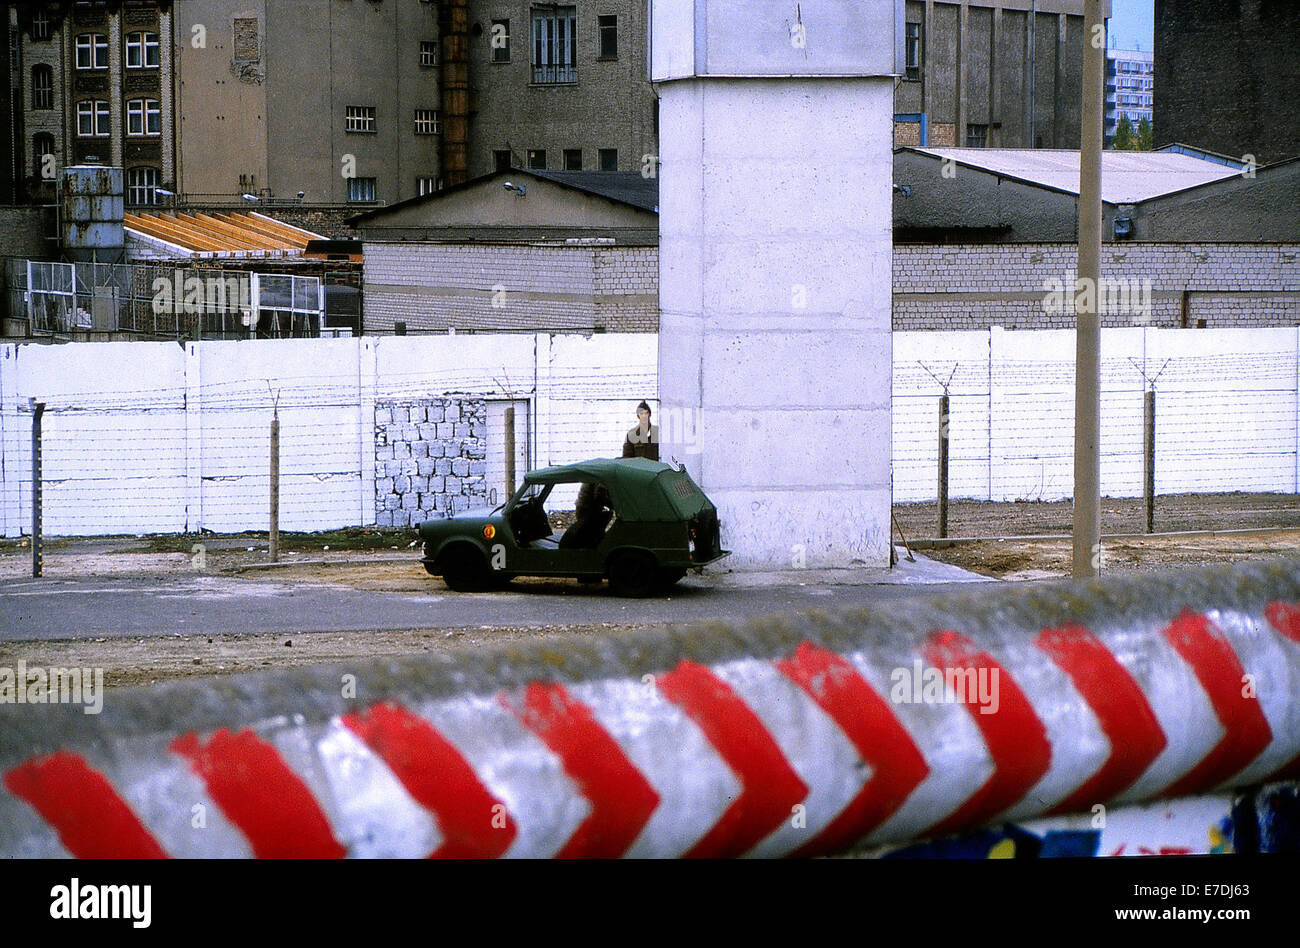 Hervorragend Galerie Fur Bordre Bad Bilder. East German Border Patrol Stock Photos U0026  East German Border